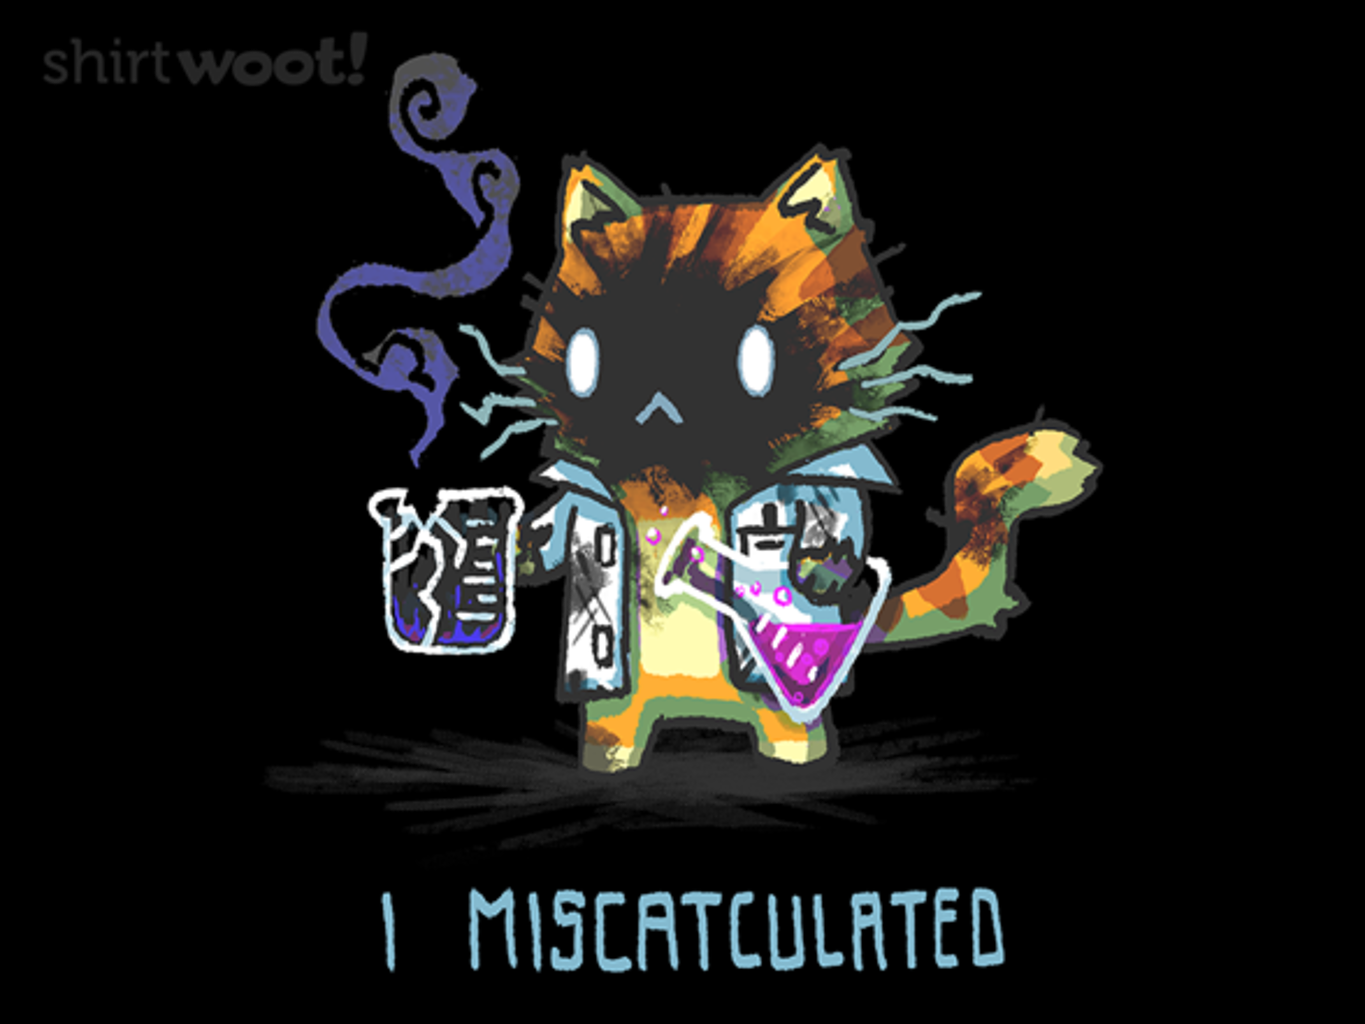 Woot!: I Miscatculated